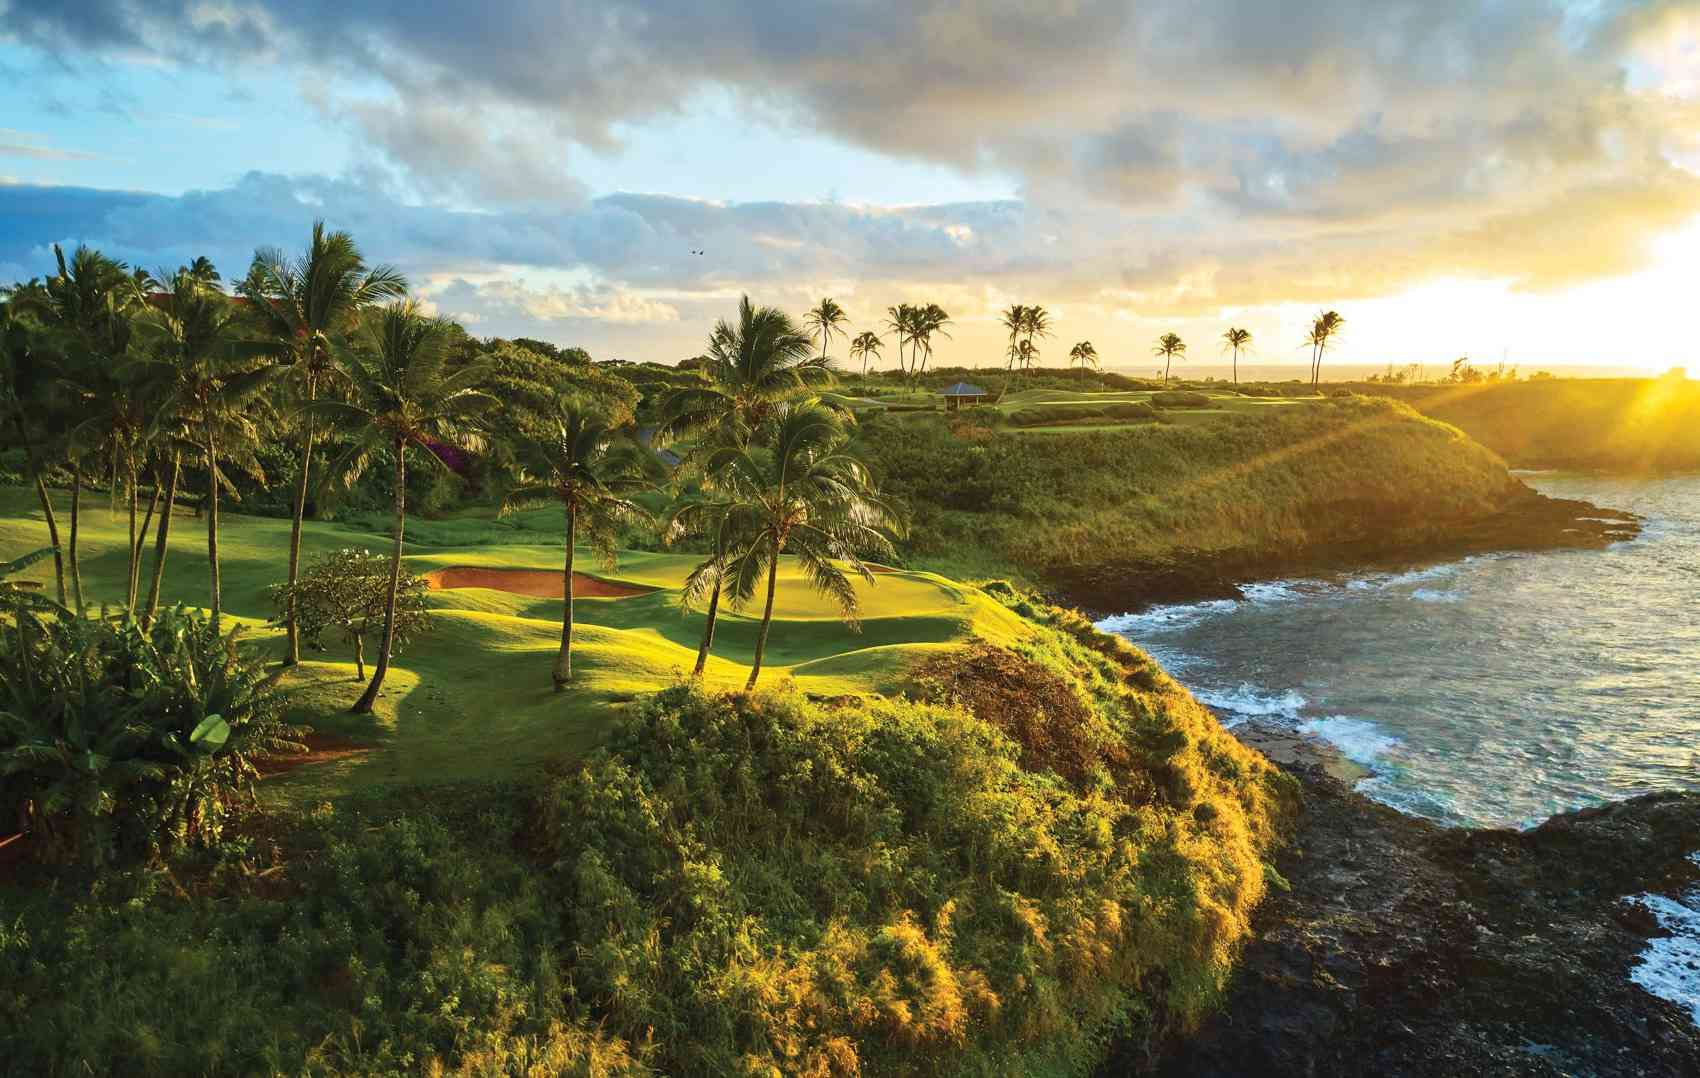 aerial view of a golf course with palm trees at sunset